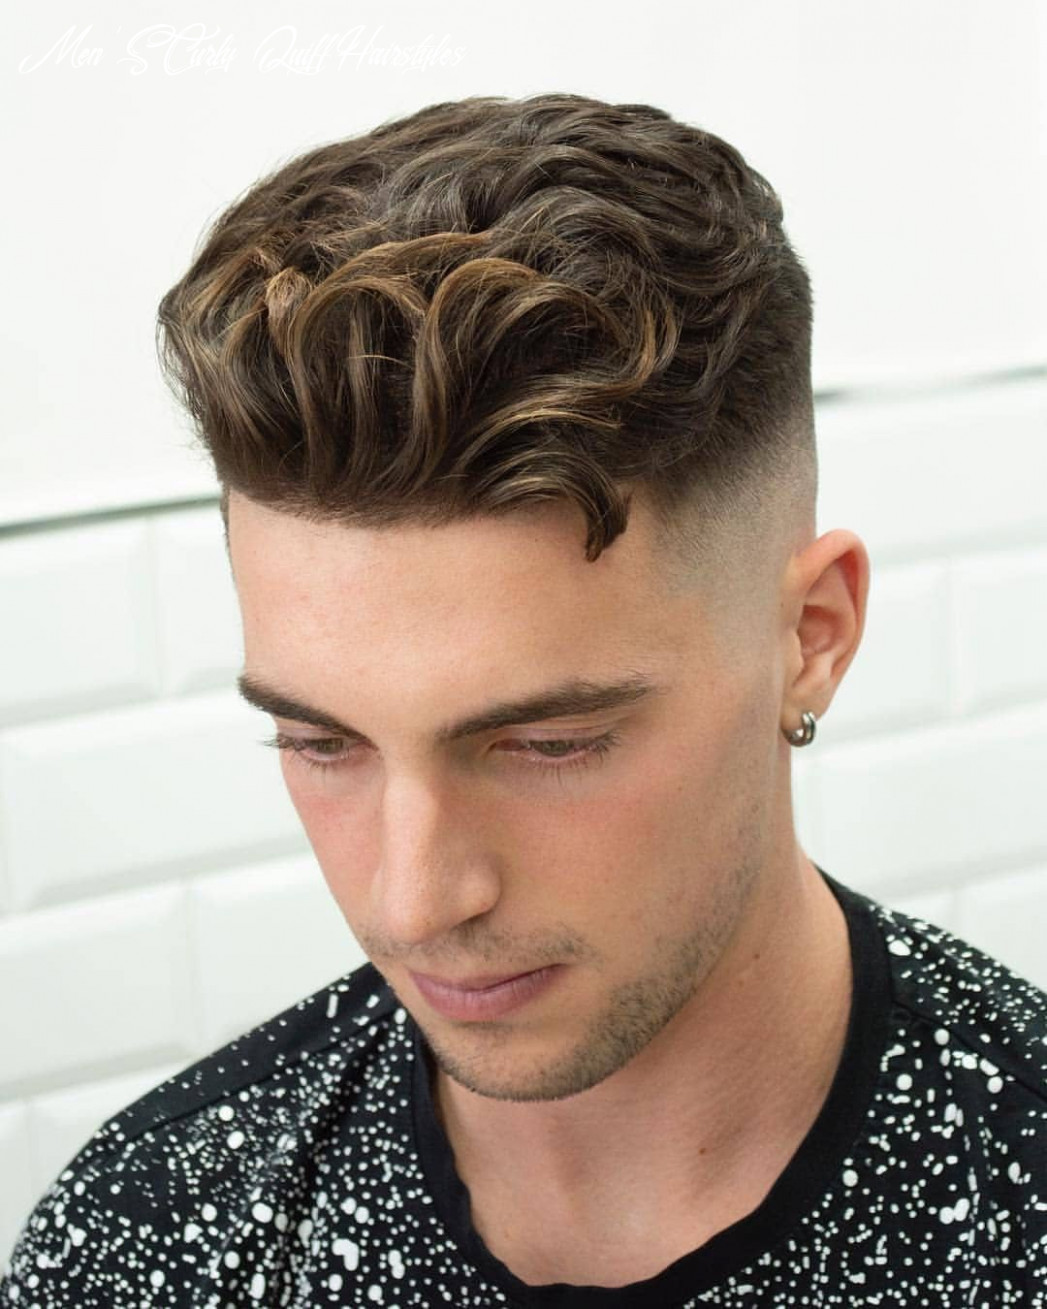 11 quiff hairstyles we absolutely love | undercut hairstyles, wavy